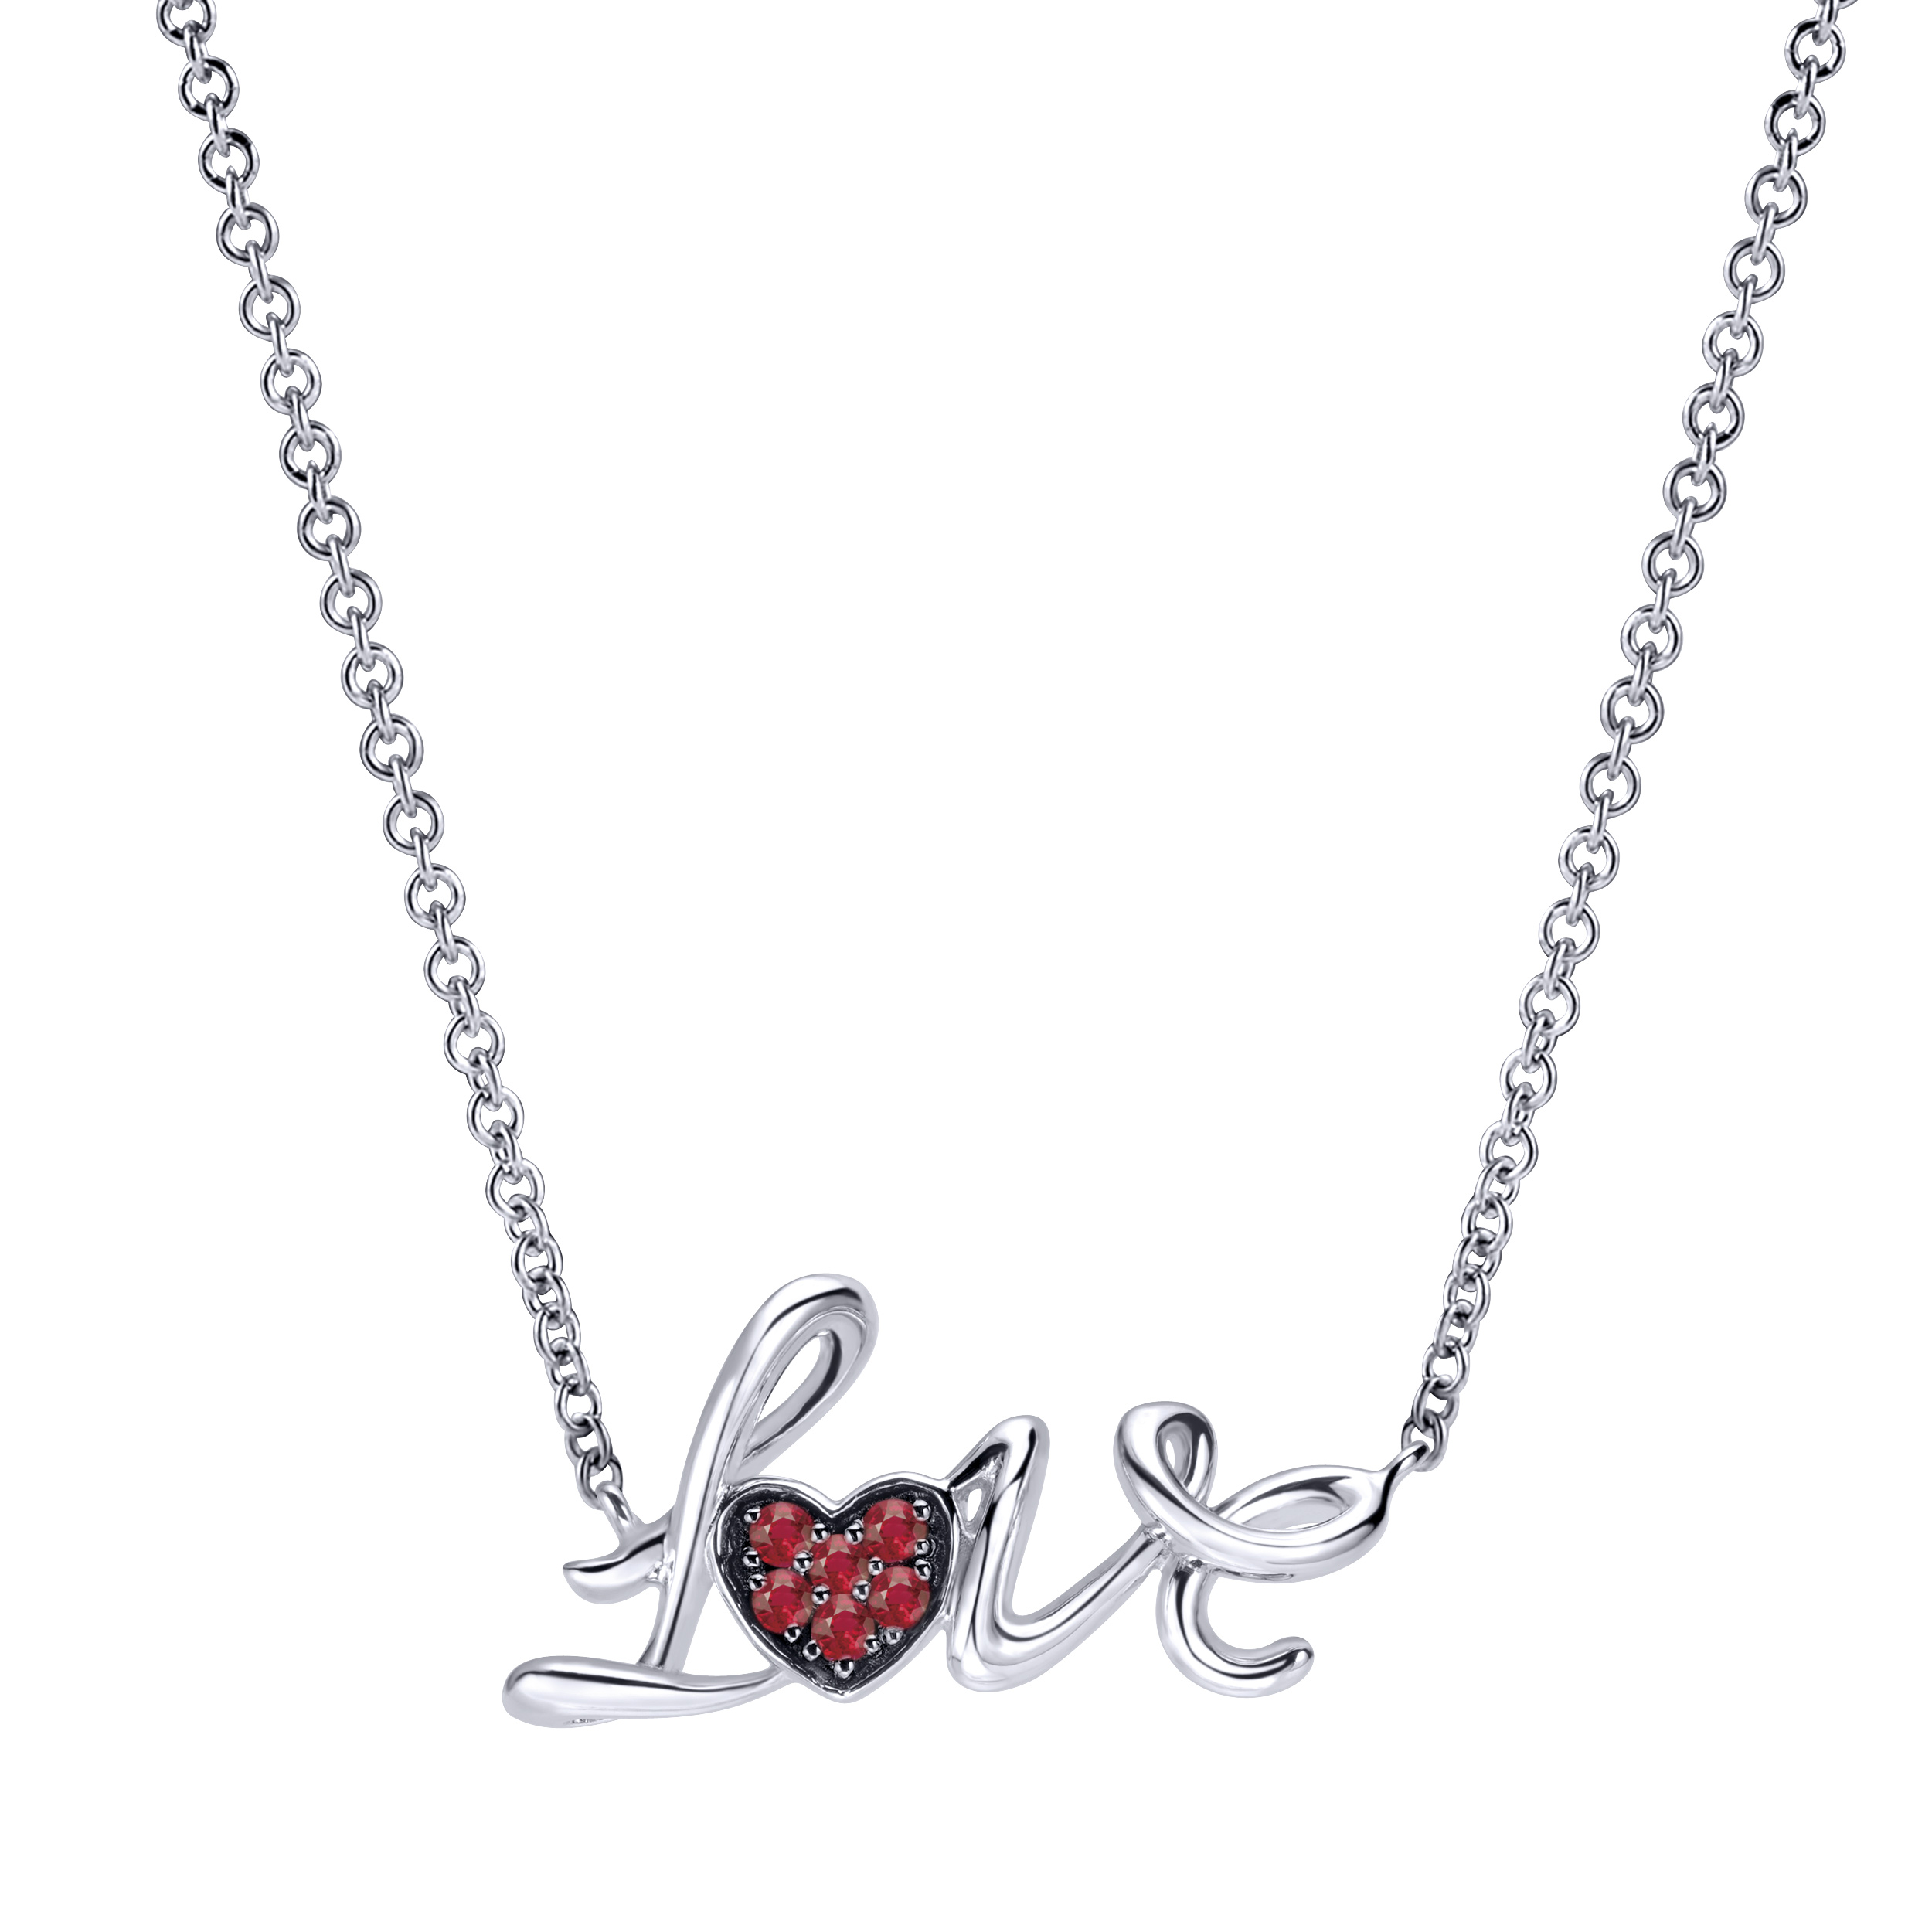 Ladies Silver Love Necklace With Pave Set Rubies In Heart